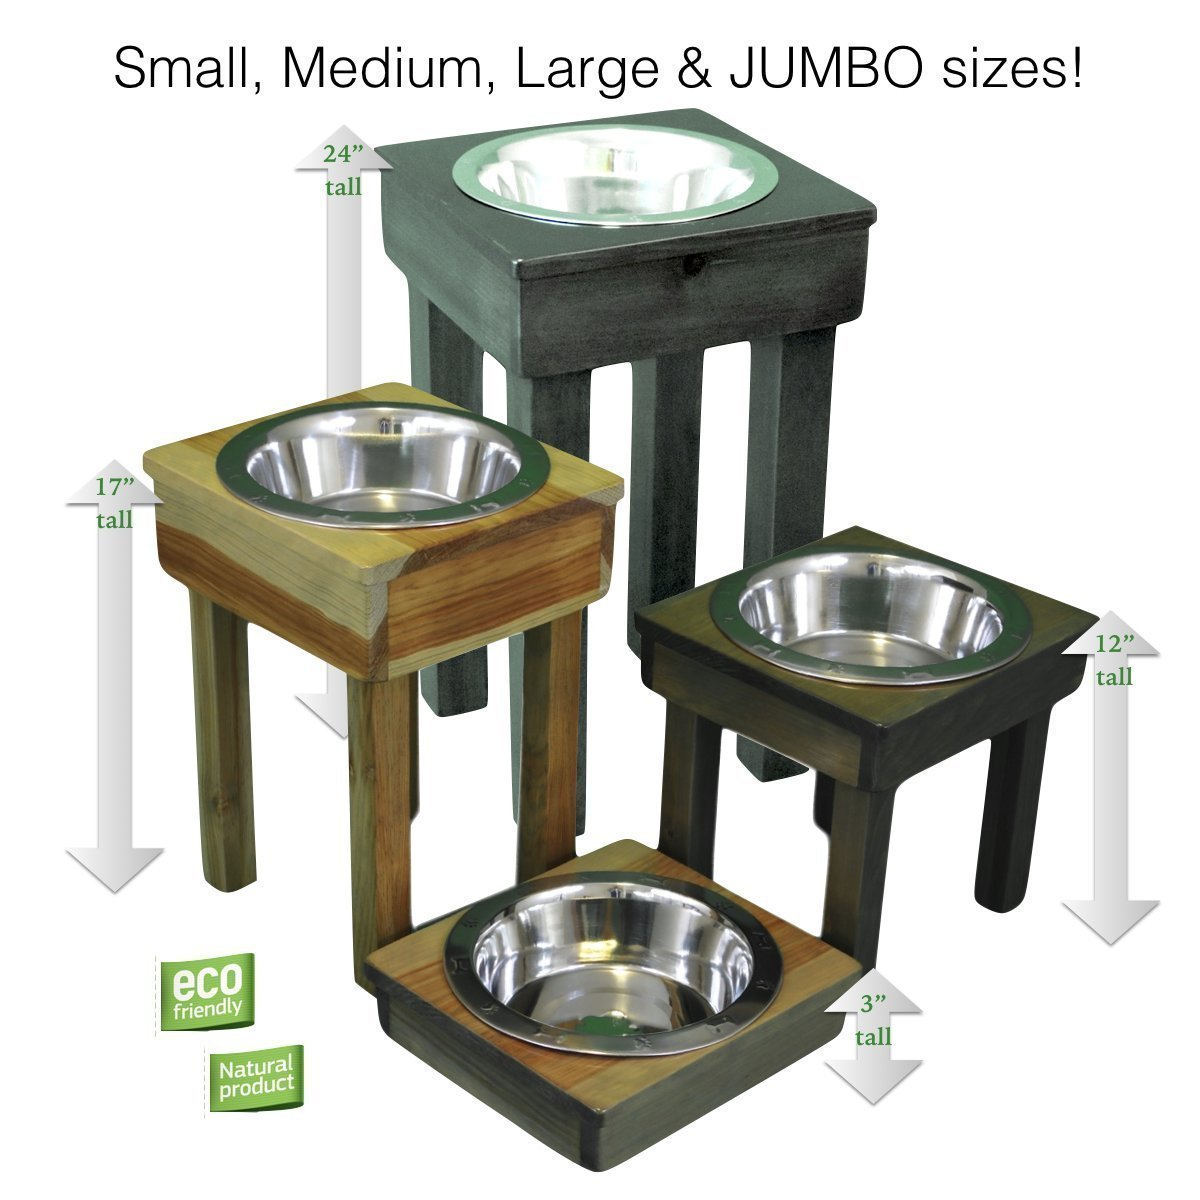 Raised Dog Bowl, 3''H, 12''H, 17''H or 24''H, Single Dish, 100% Natural, Eco-Friendly, Non-Toxic durable finish! 3 qt embossed stainless steel bowl. Raised Dog Dish, Feeding Stand, USA crafted by OFTO